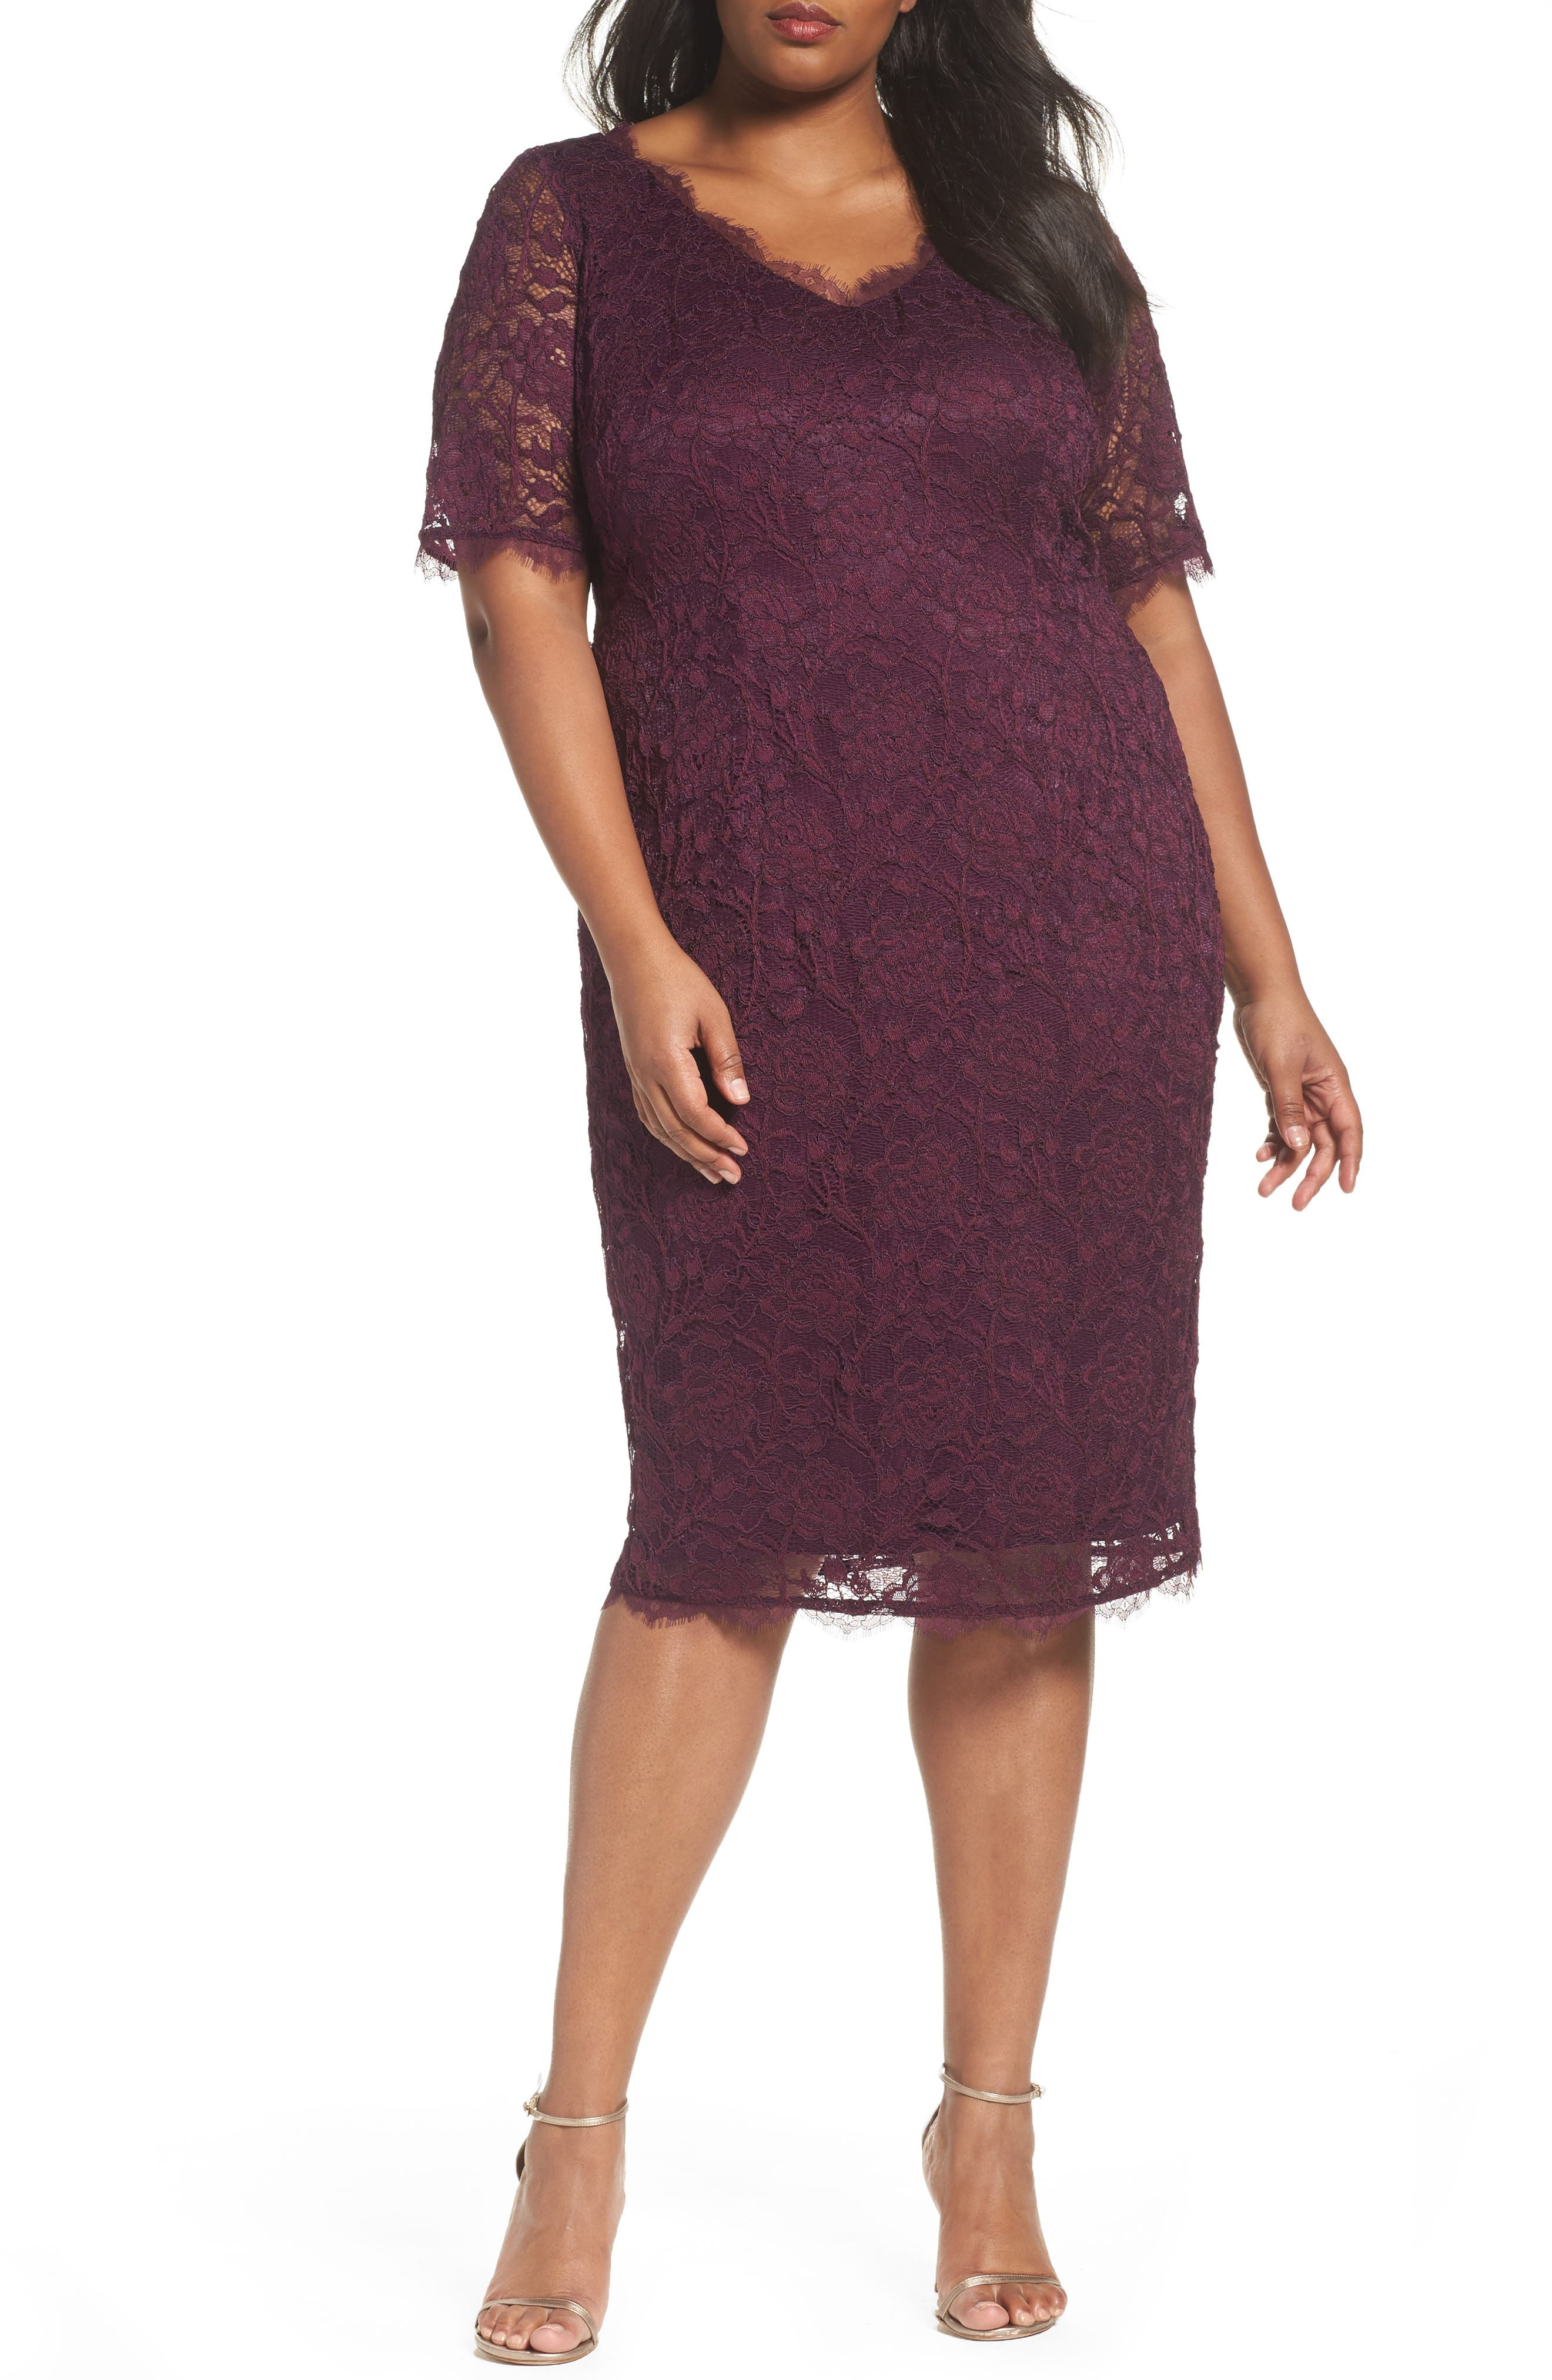 Adrianna Papell Rose Lace Sheath Dress (Plus Size)